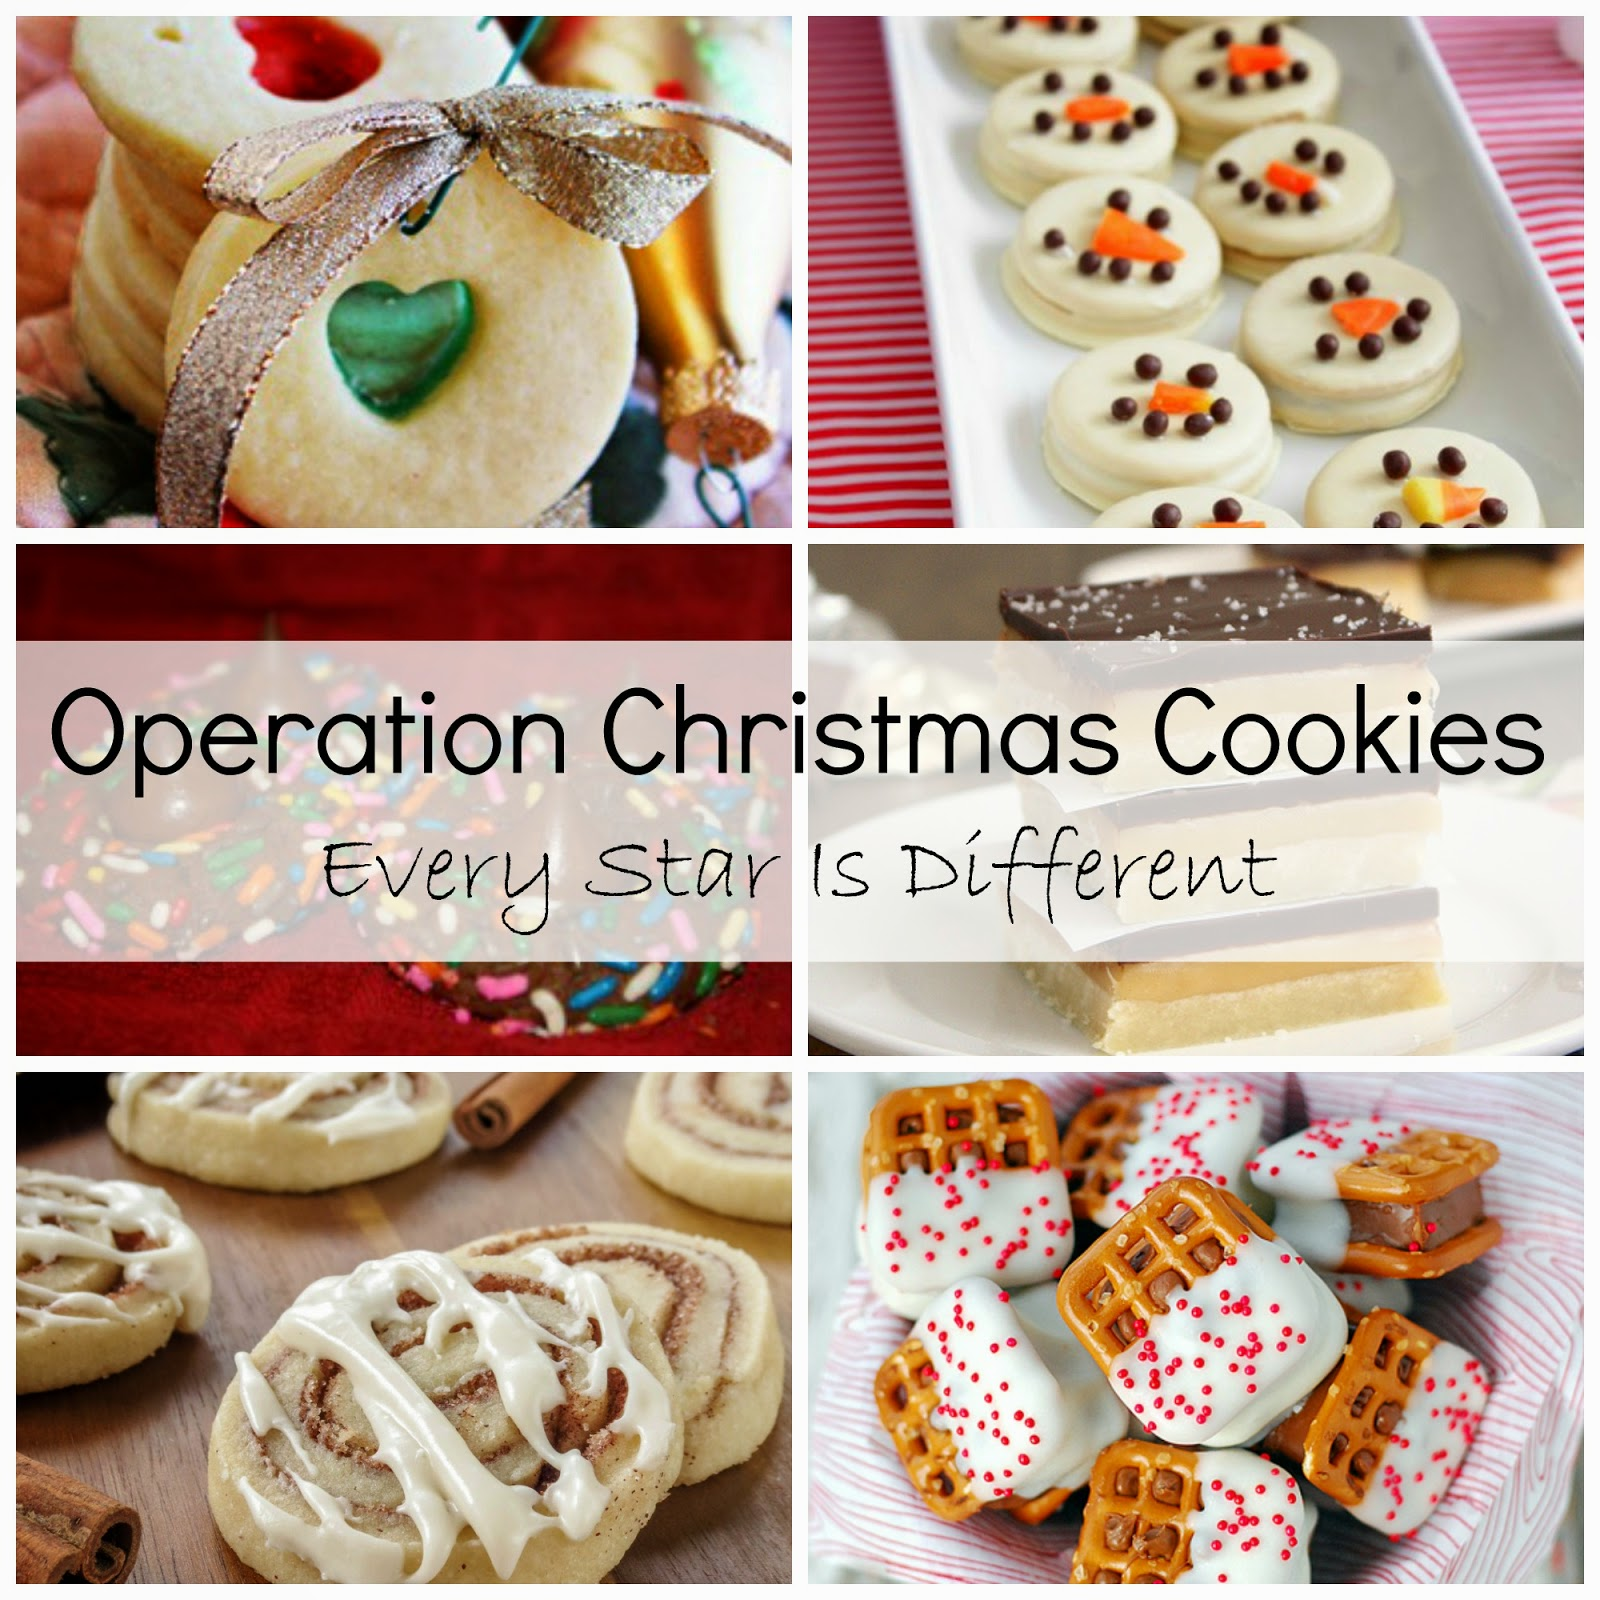 Operation Christmas Cookies Every Star Is Different